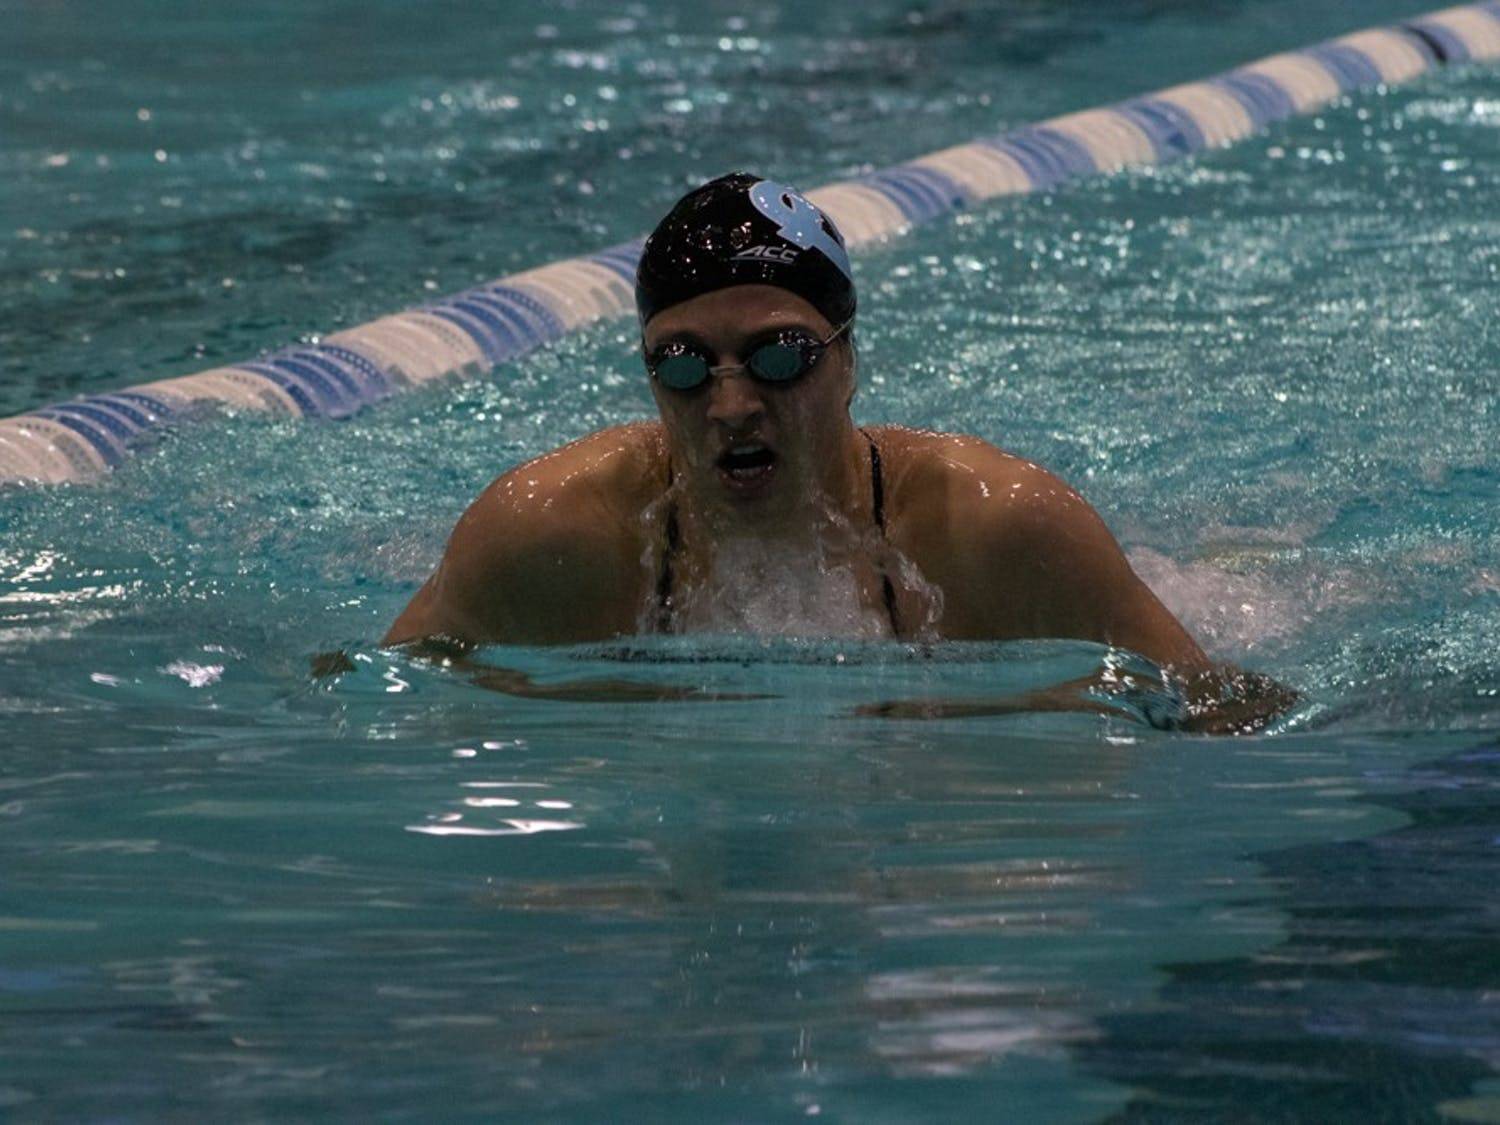 Sophomore, Lilly Higgs competes in the Women's 200 Yard Breastroke event against Georgia on Friday, Oct. 25, 2019